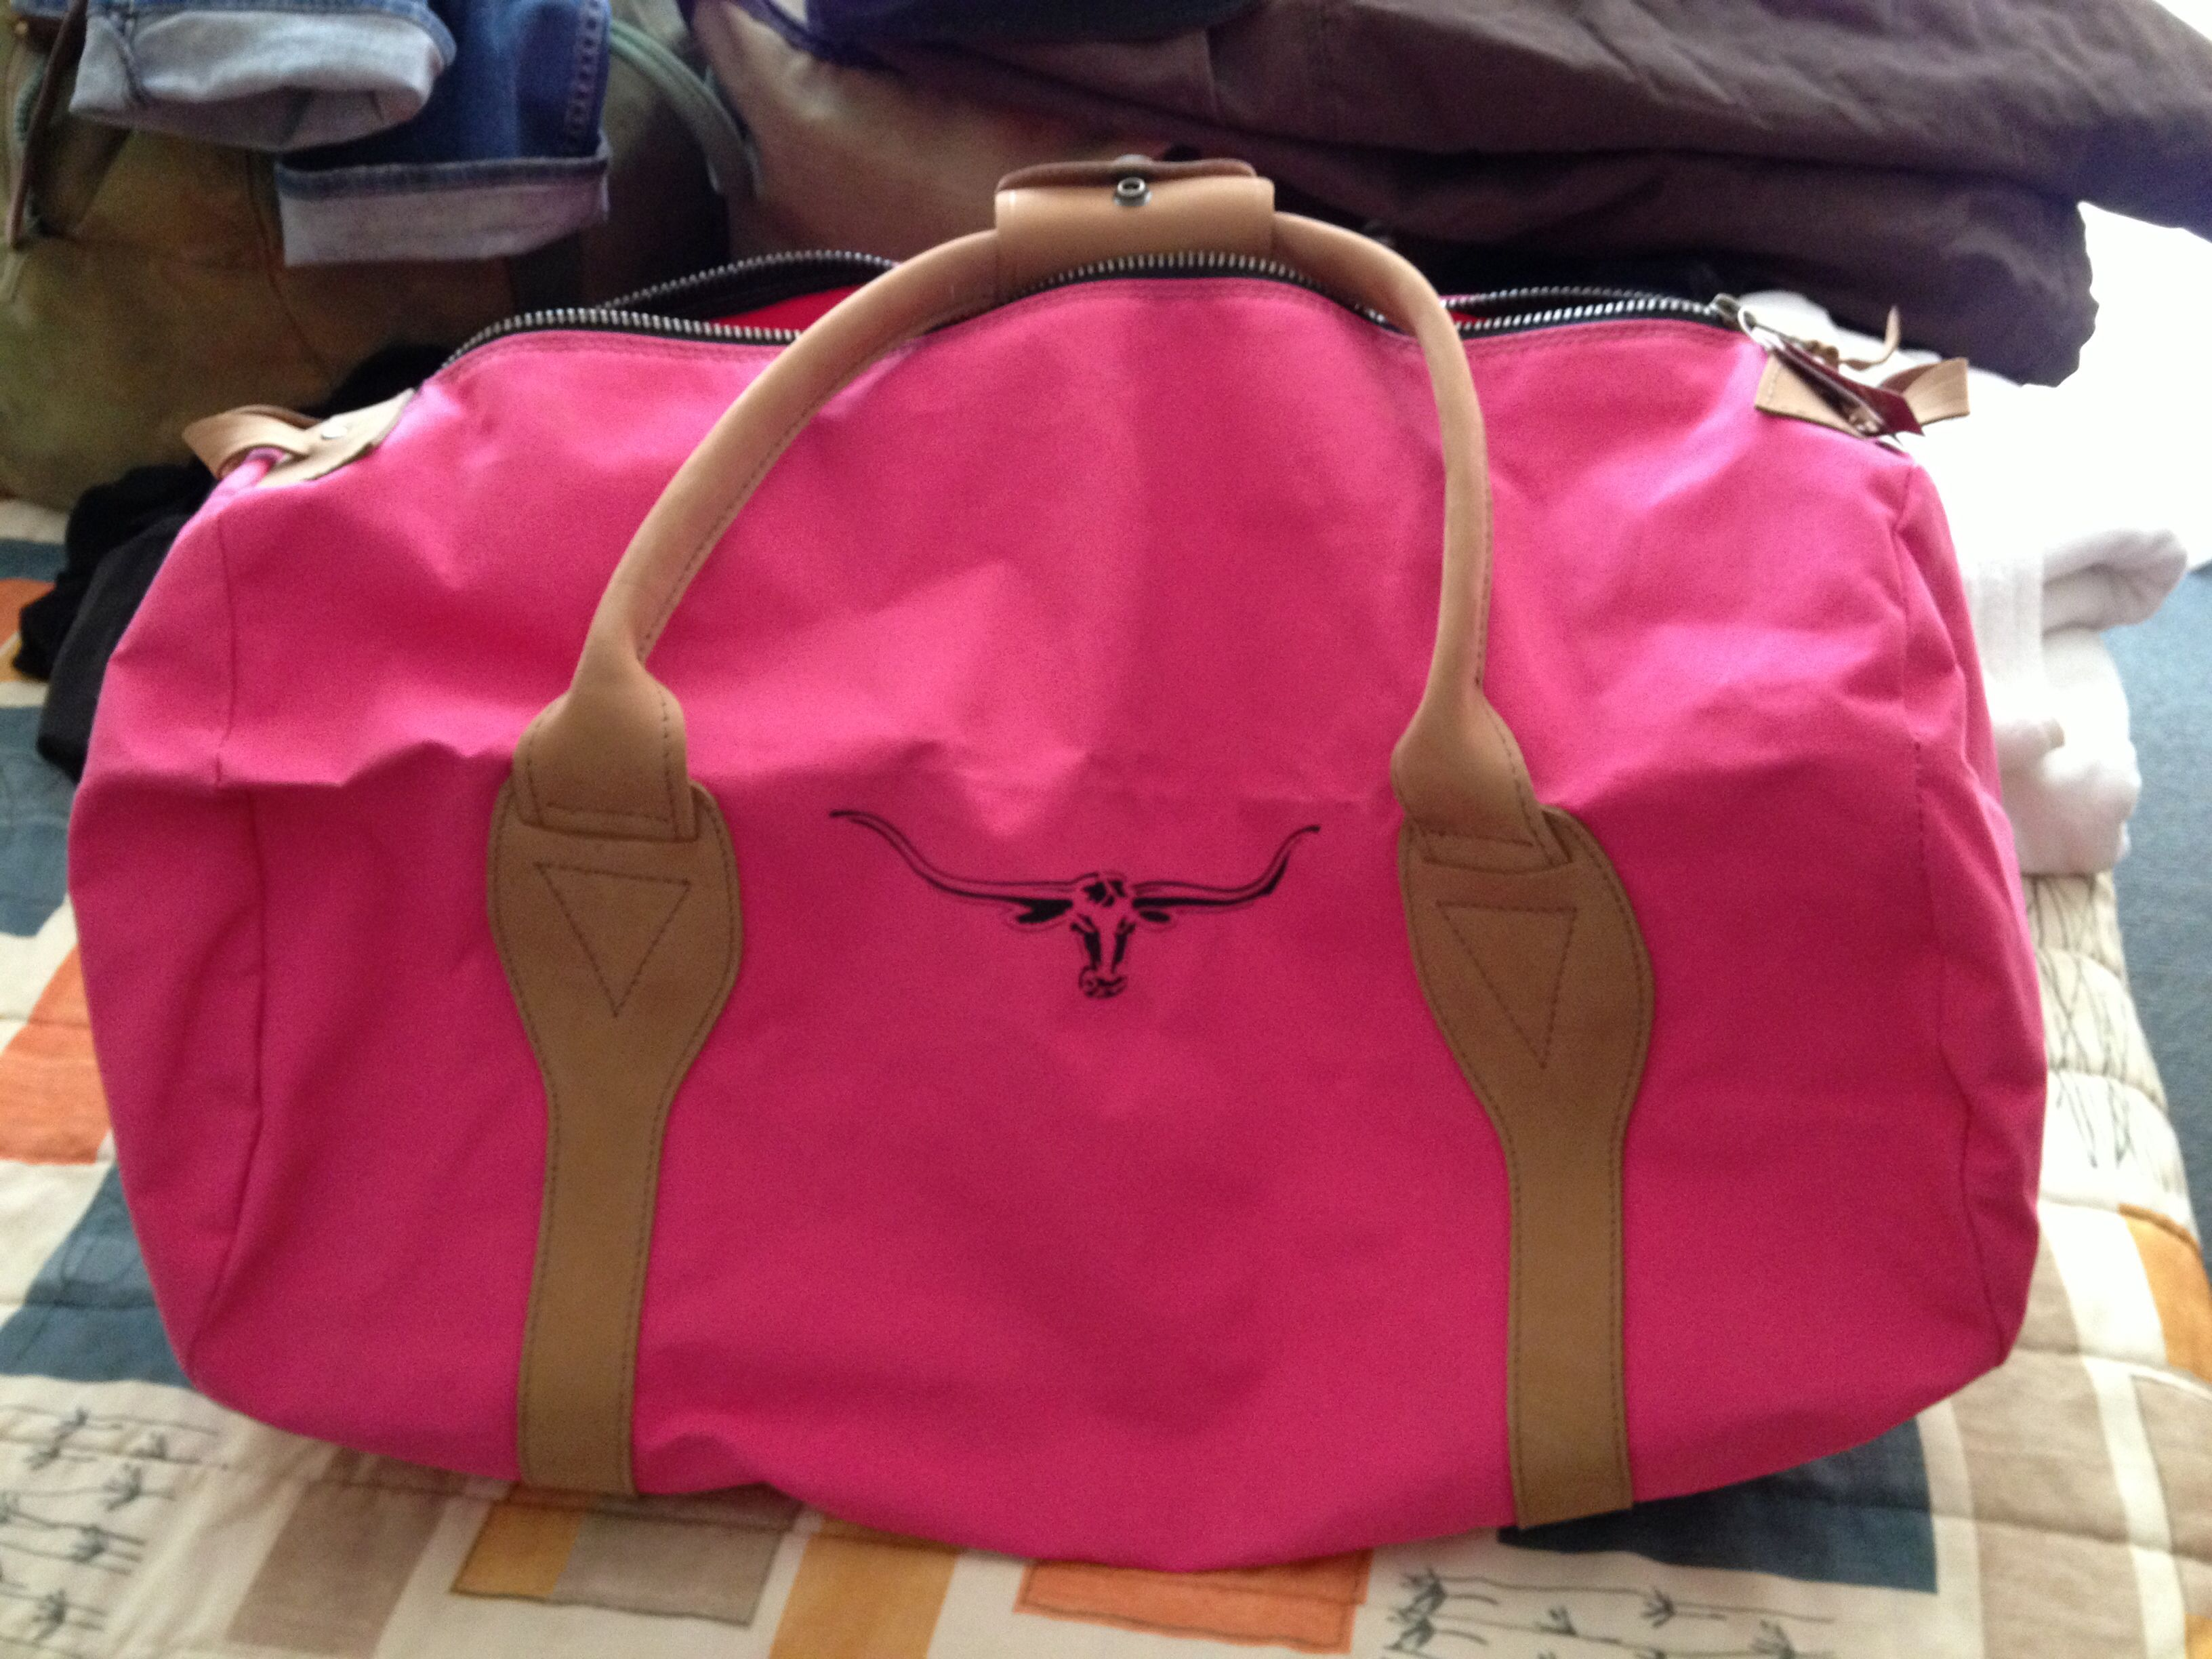 Pink Ute Bag By Rm Williams